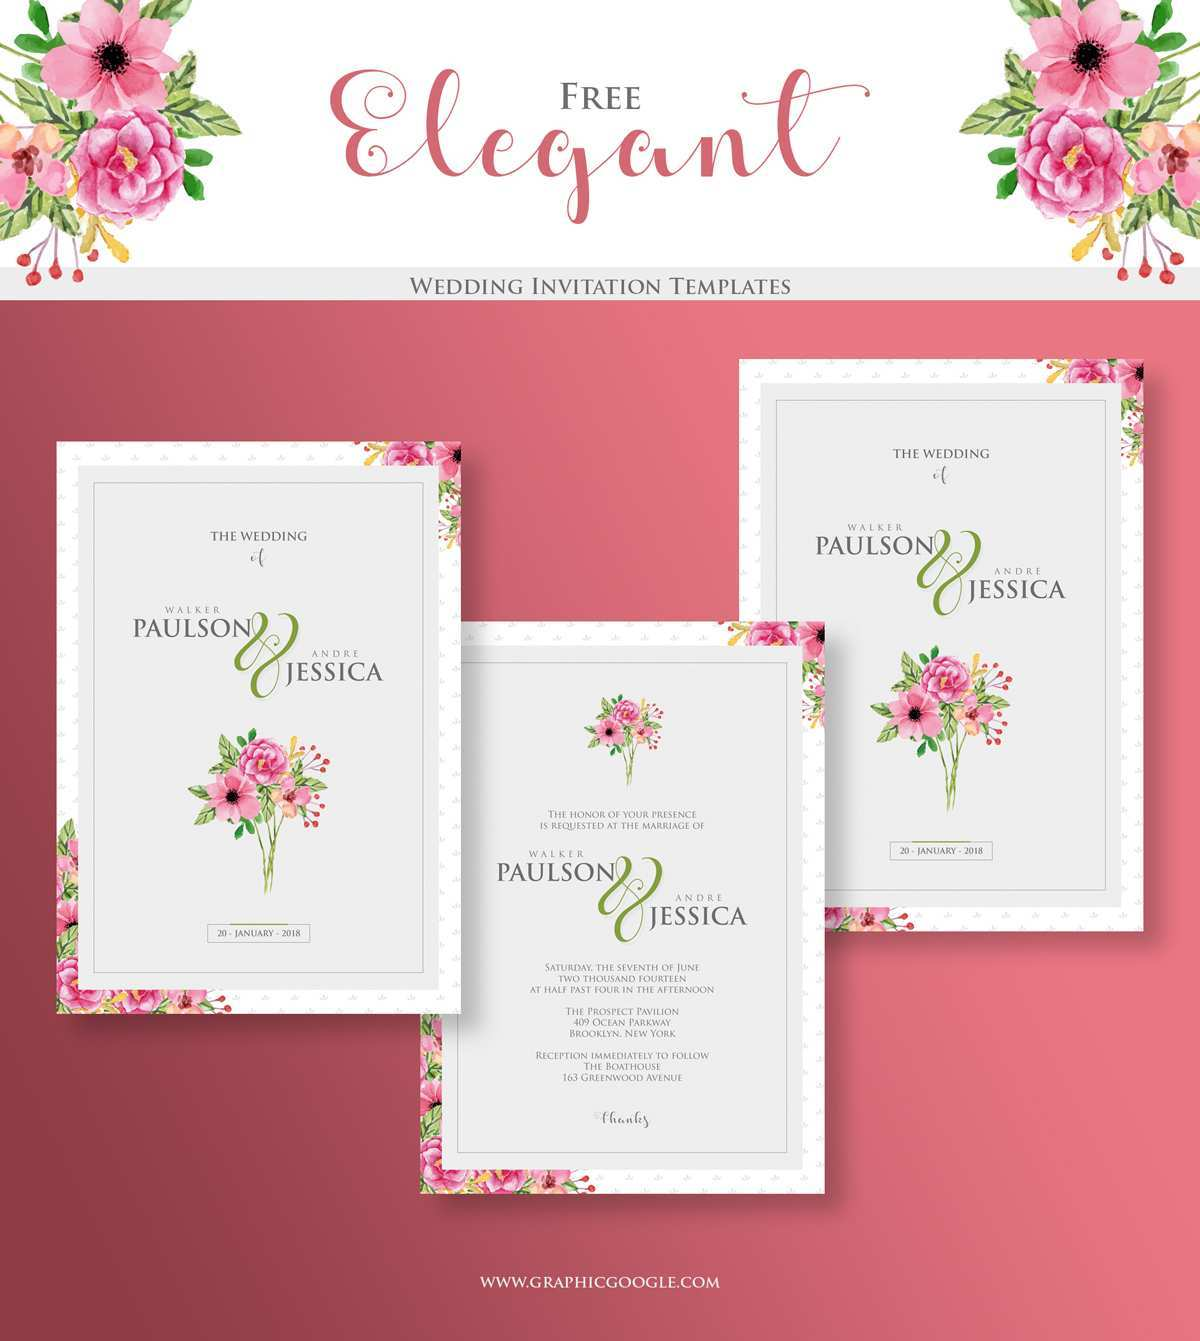 65 The Best Elegant Wedding Invitation Designs Free for Ms Word for Elegant Wedding Invitation Designs Free